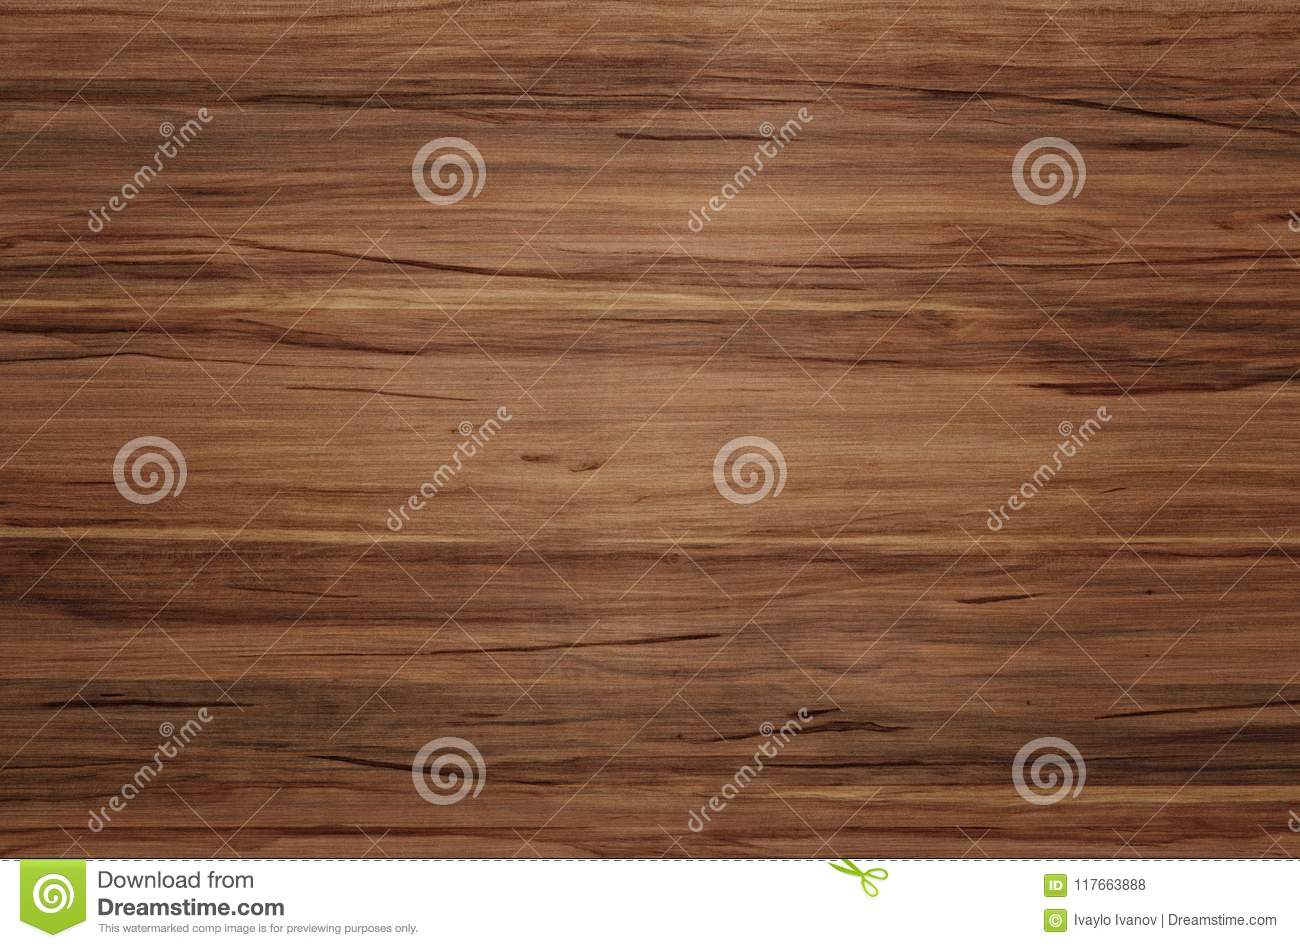 Brown grunge wooden texture to use as background. Wood texture with natural pattern